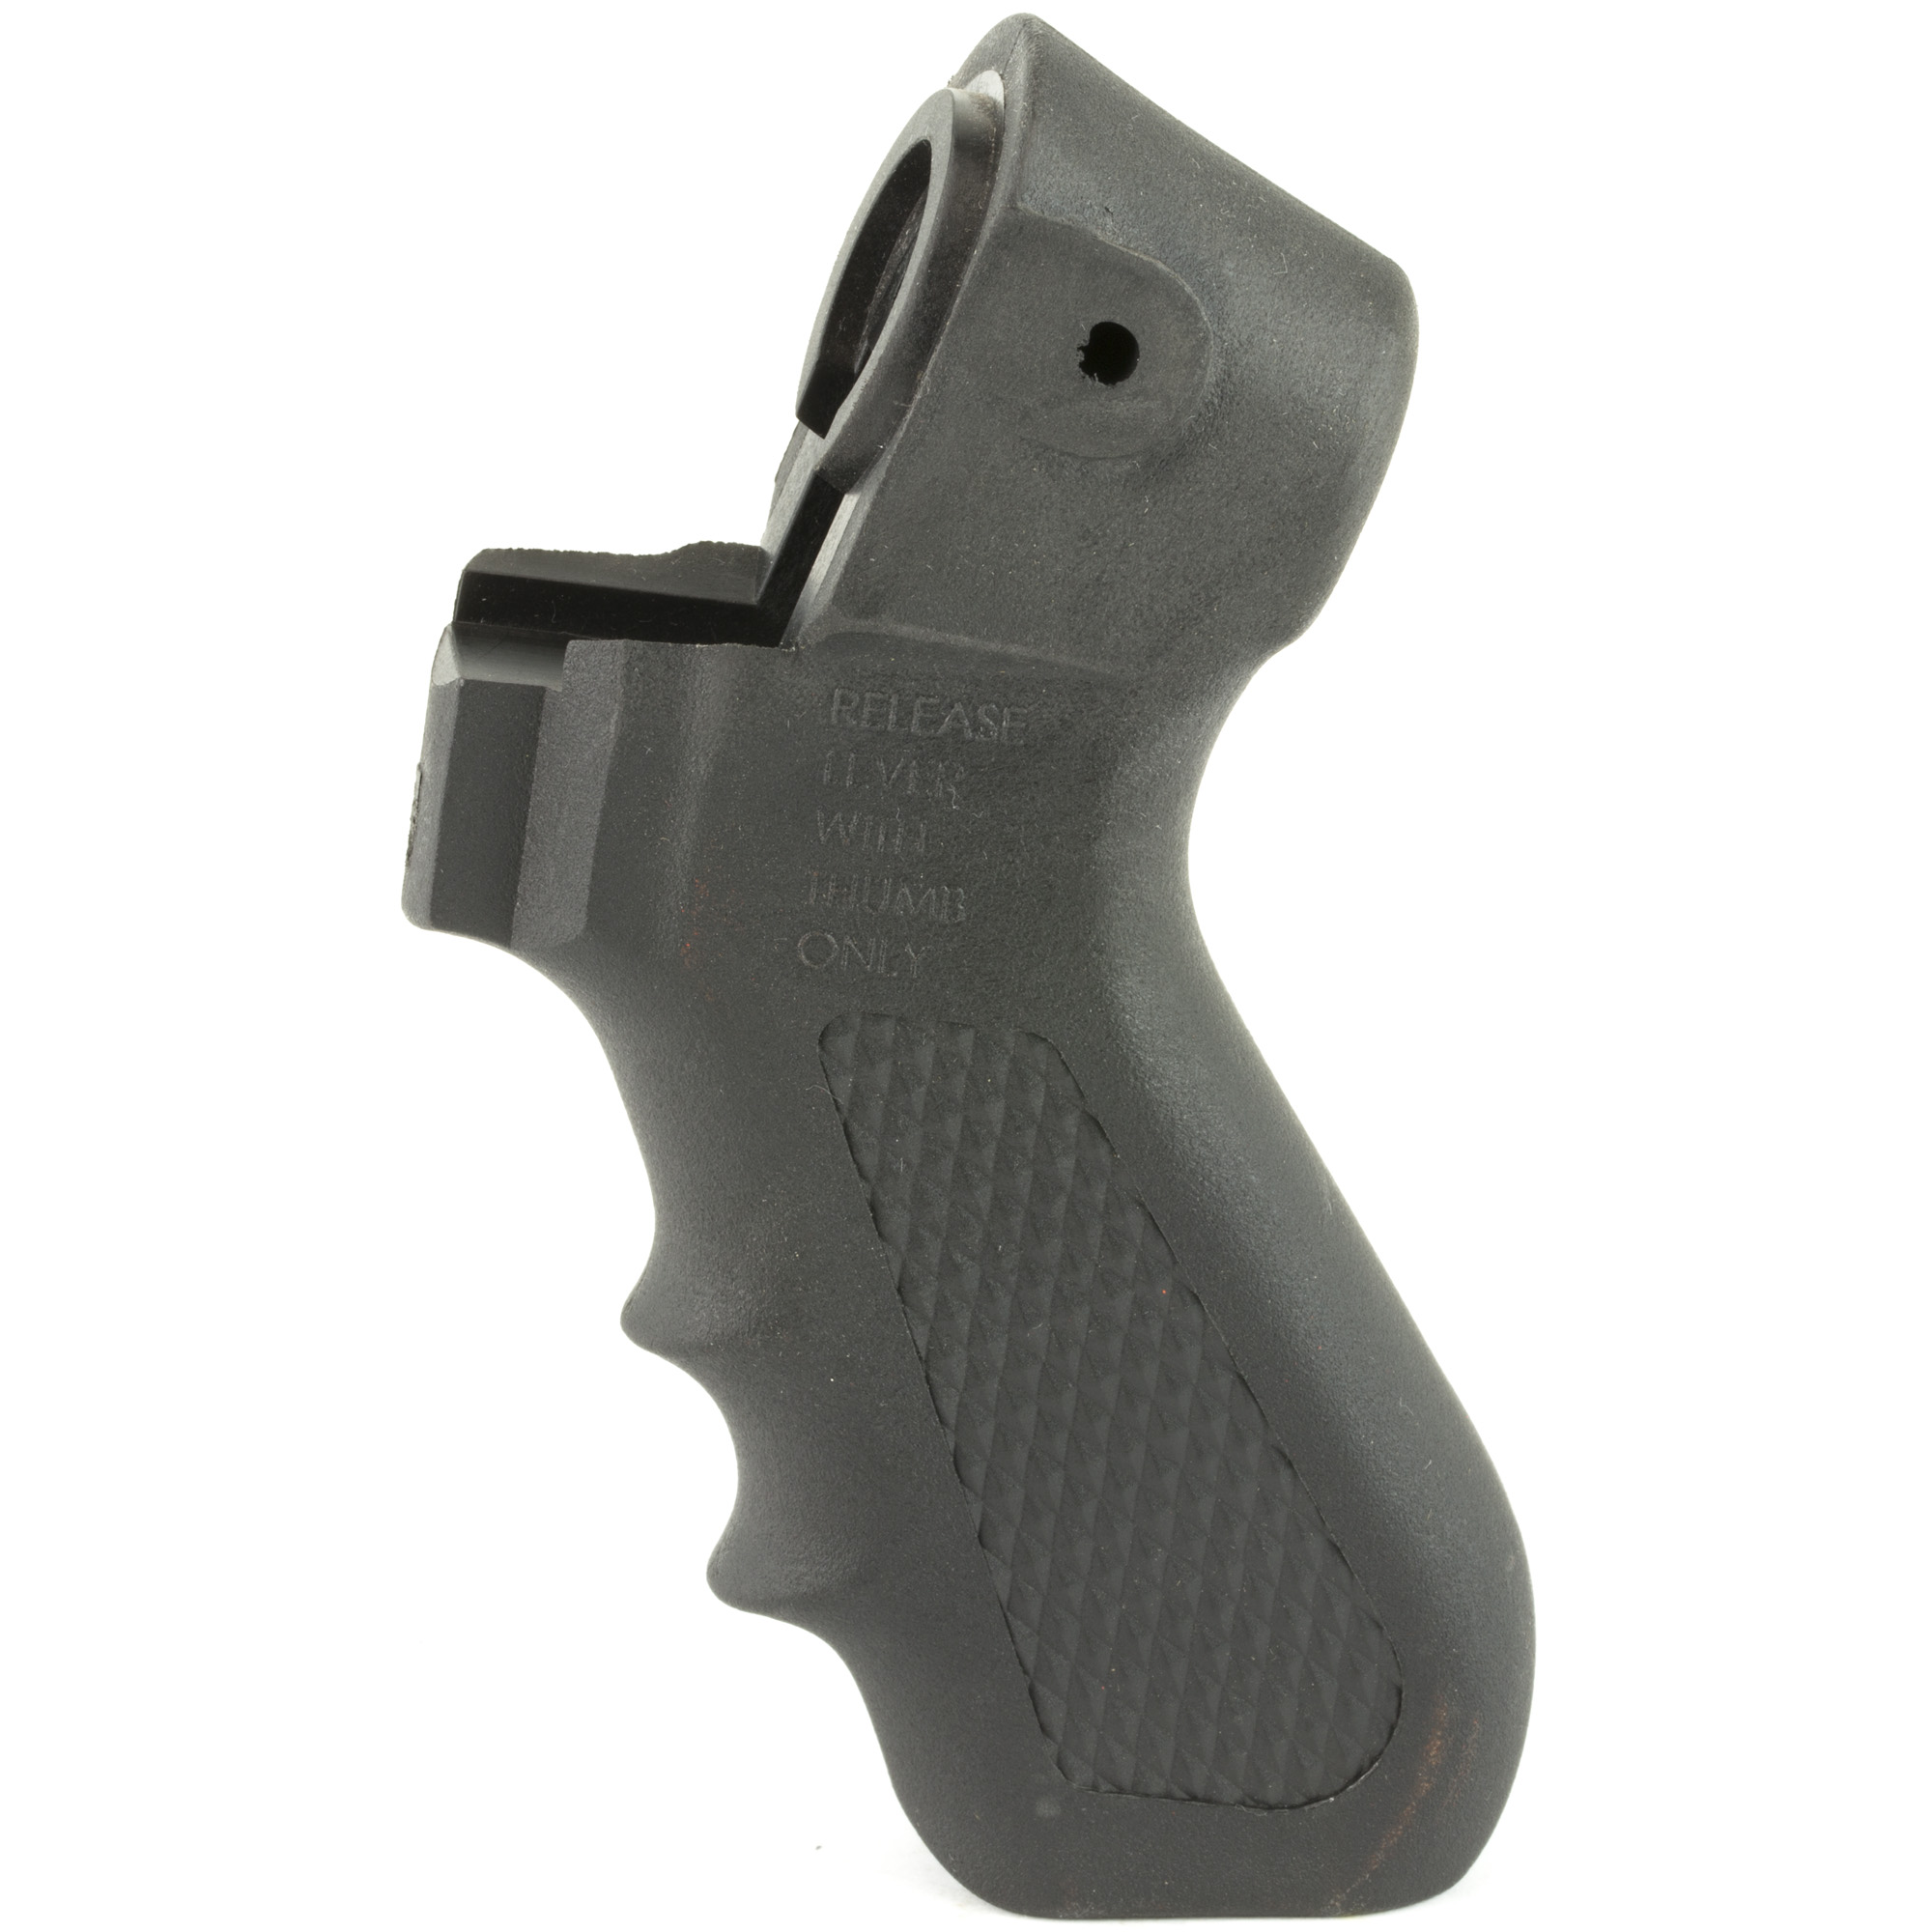 This Mossberg 500 20-Gauge Pistol Grip kit allows you to swap out the current stock on your 500 shotgun. This kit includes all the hardware and wrench needed for easy installation.